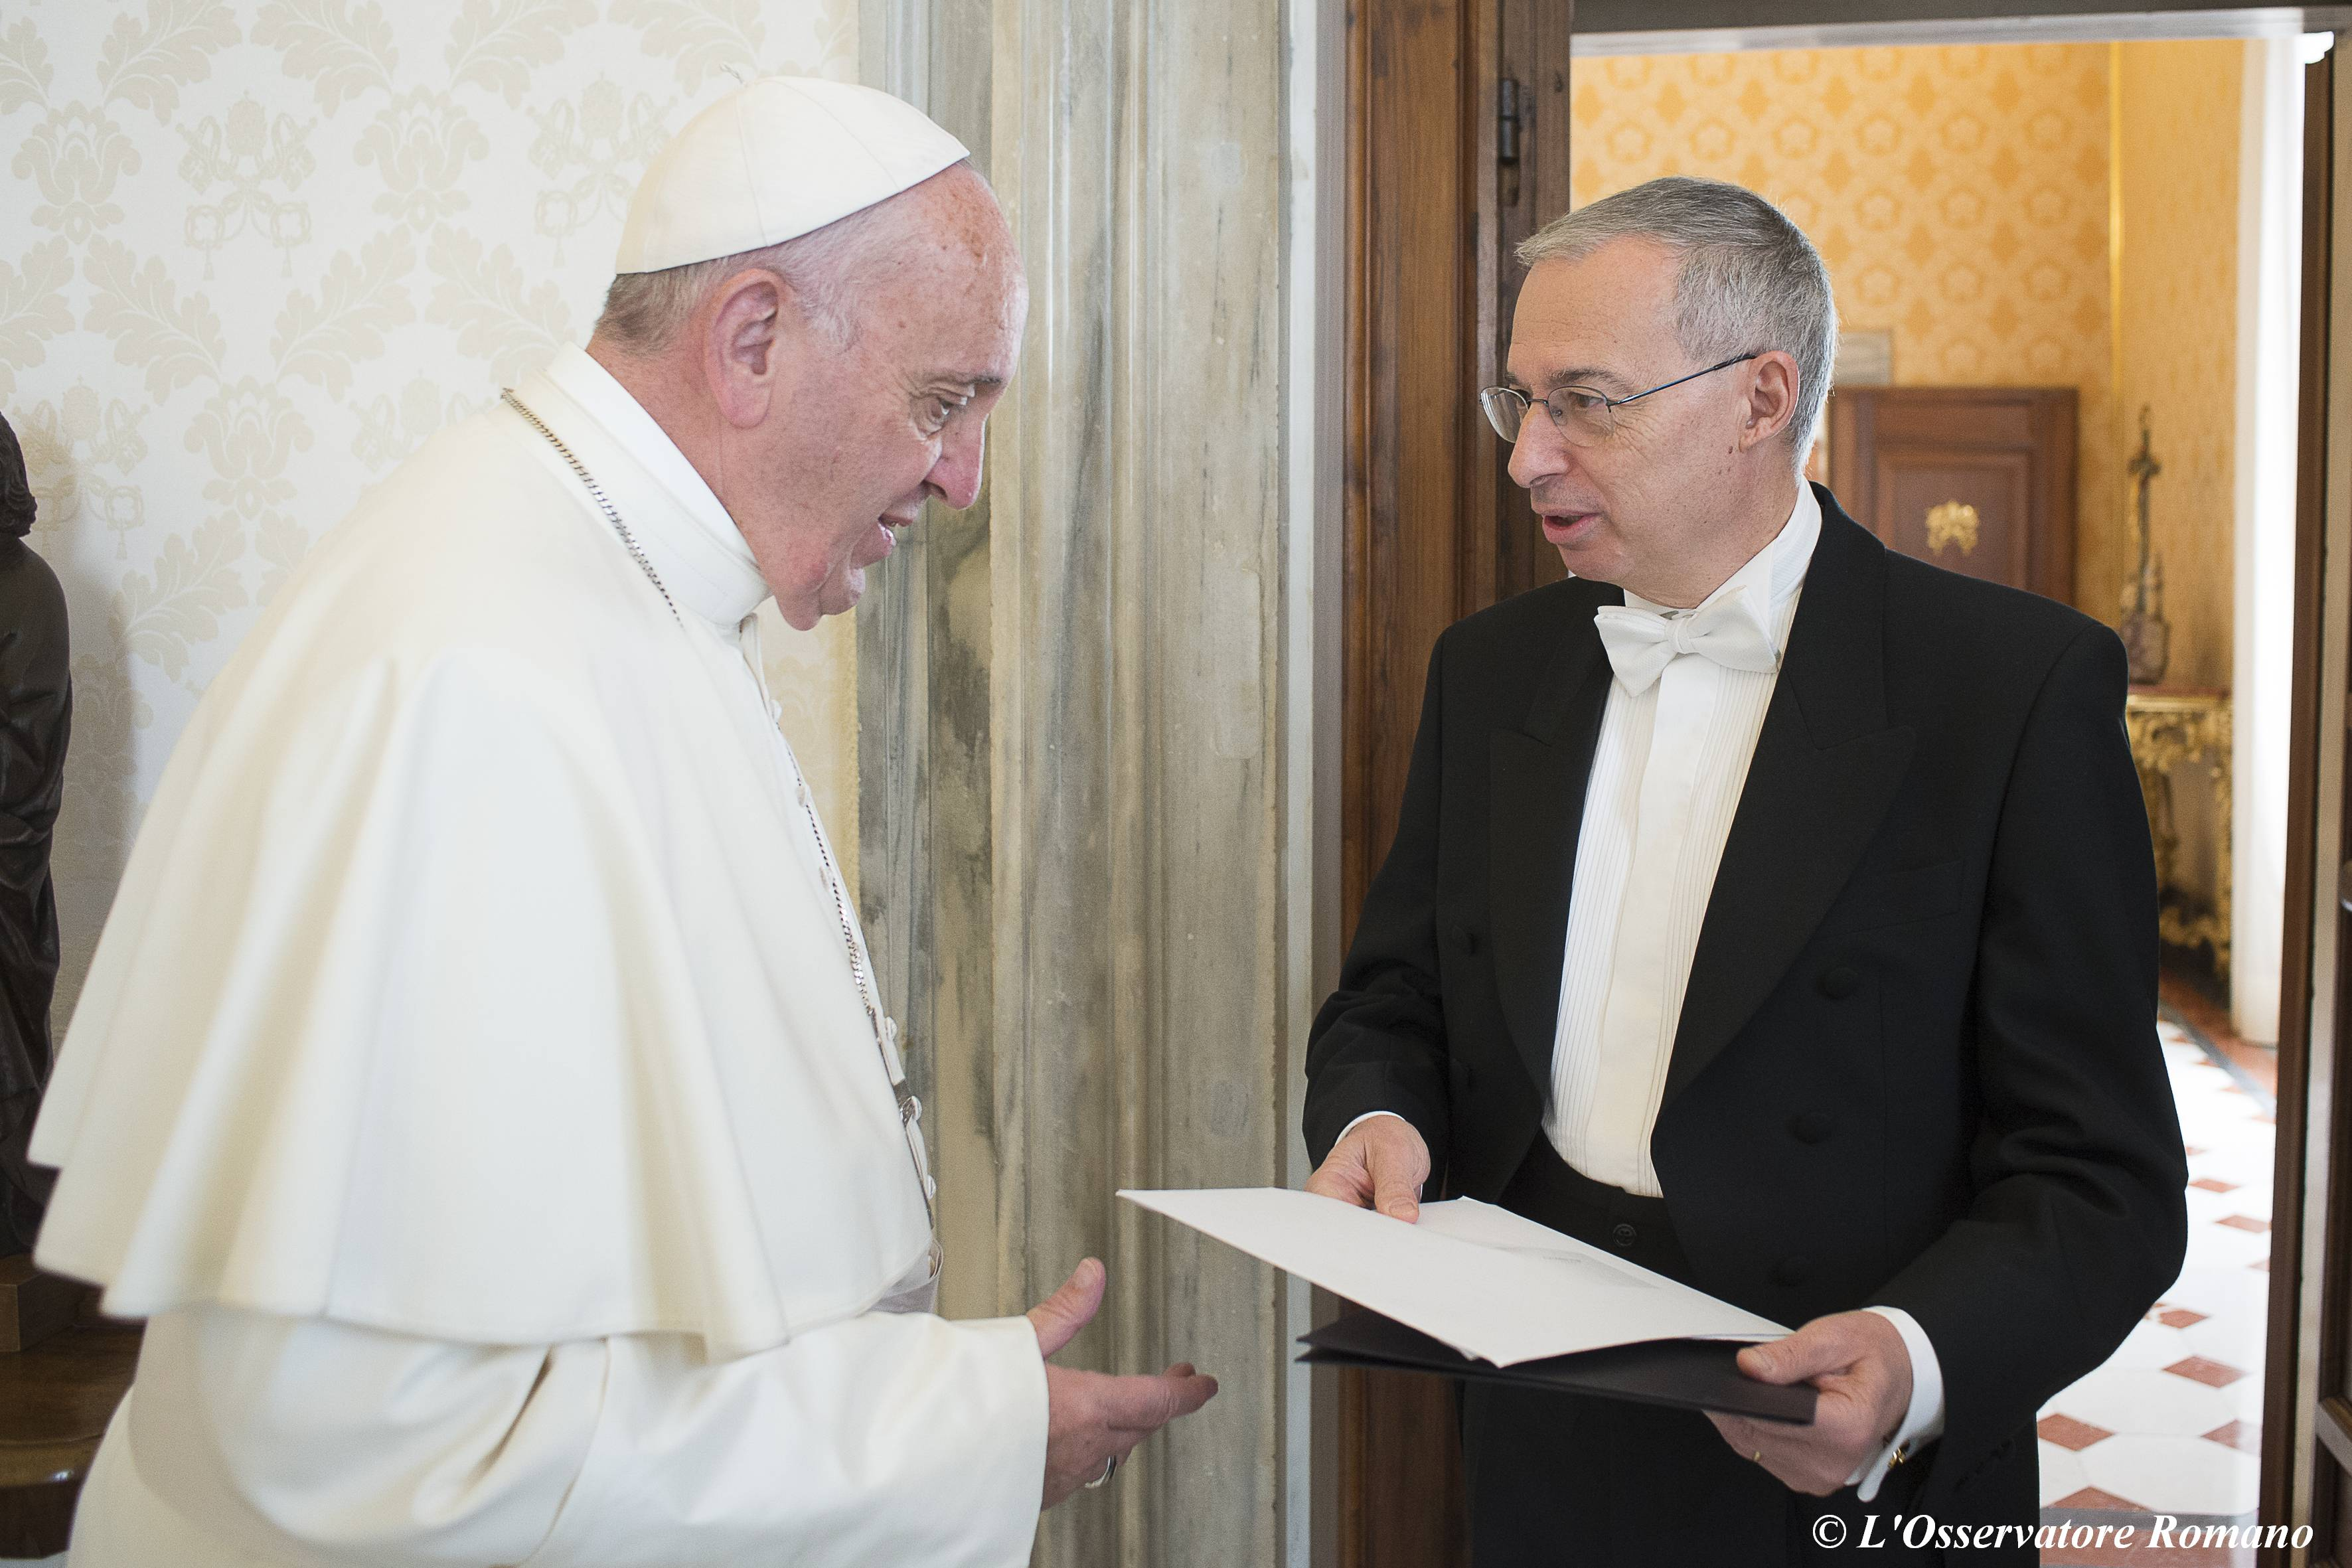 Pope Francis receives the new Ambassador of the Principality of Monaco